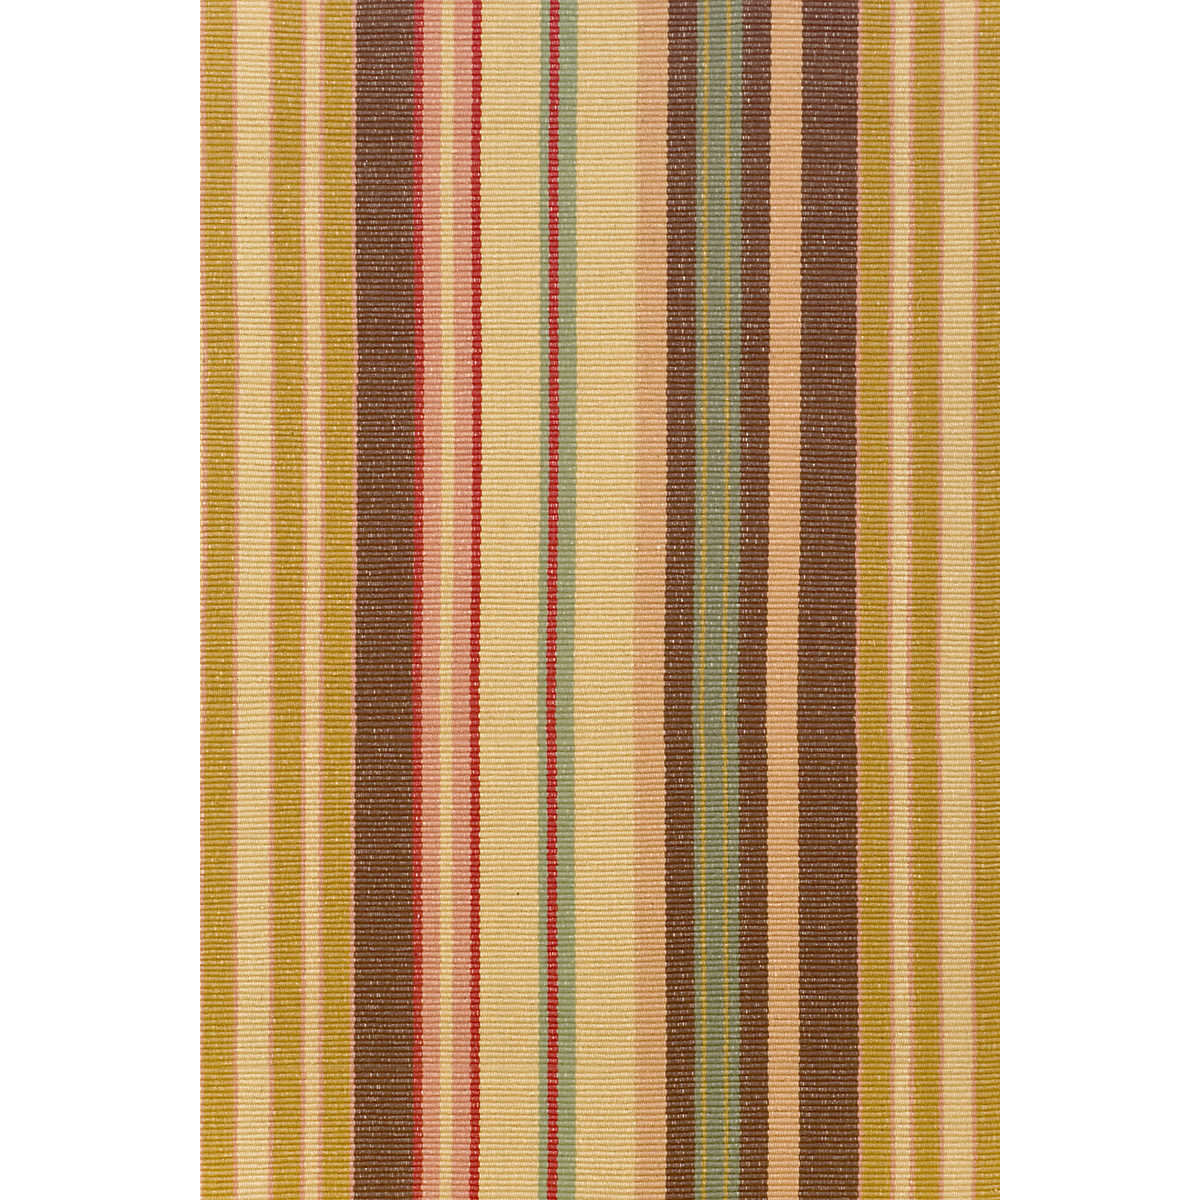 Siena Stripe Woven Cotton Rug The Outlet